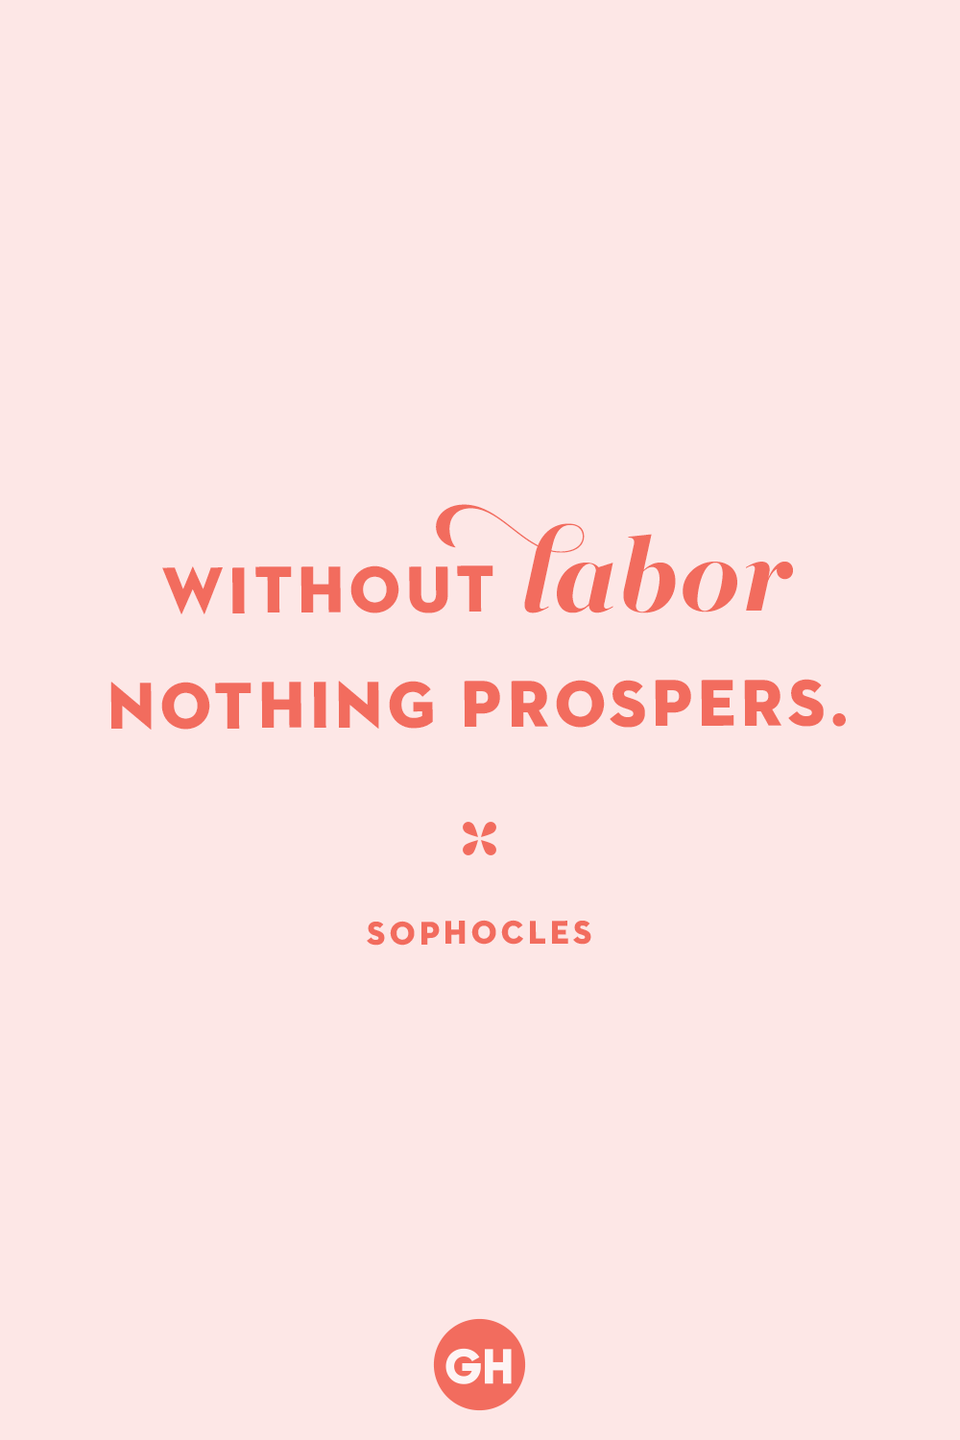 <p>Without labor nothing prospers.</p>